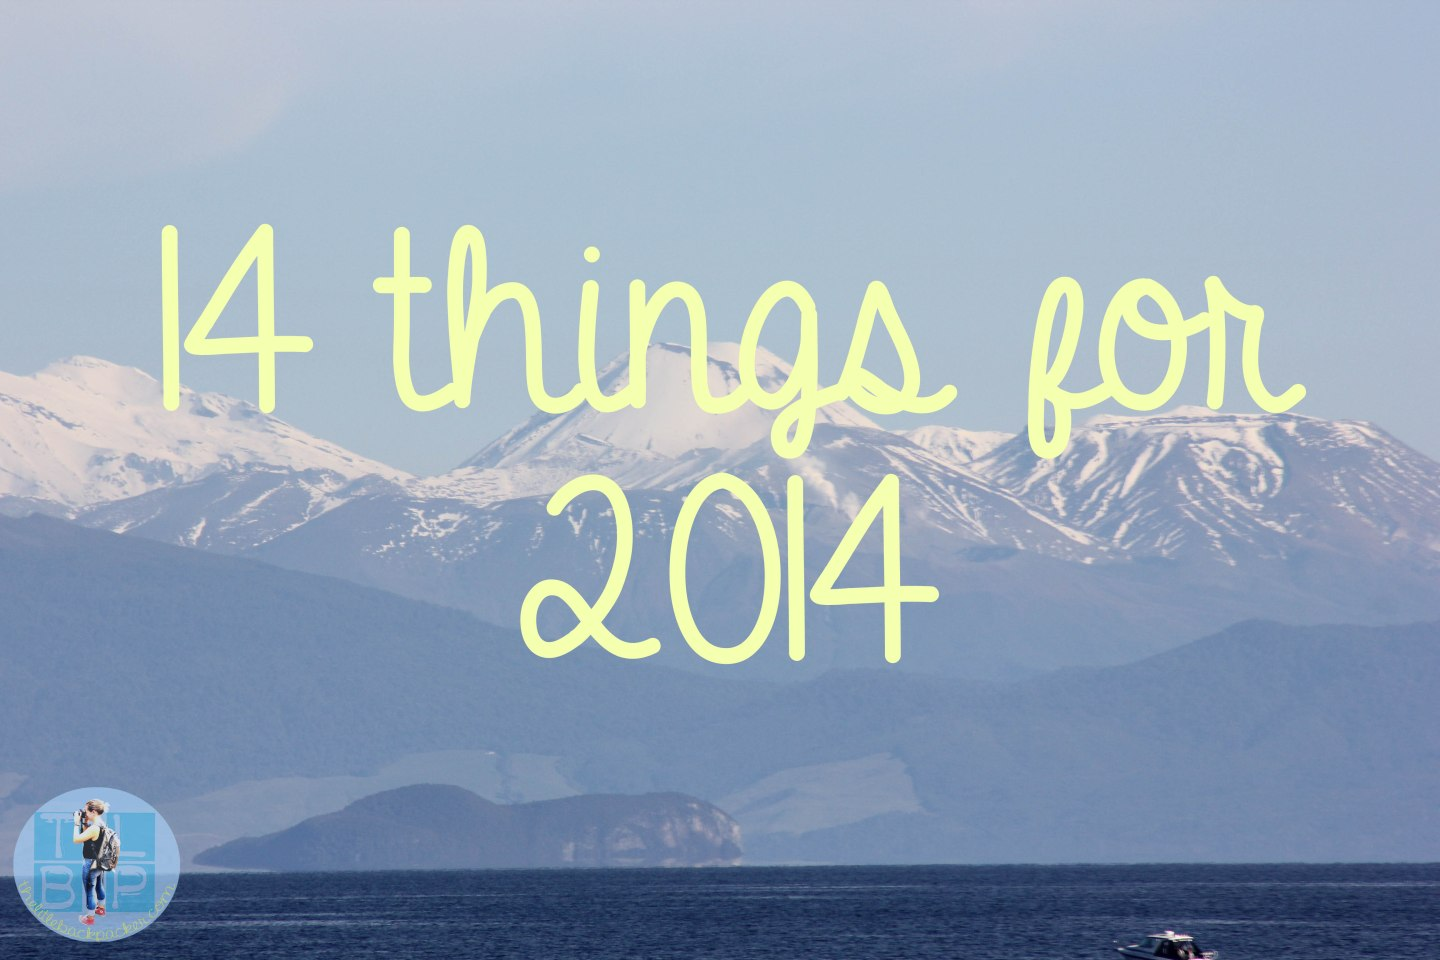 Infographic: 14 Things For 2014